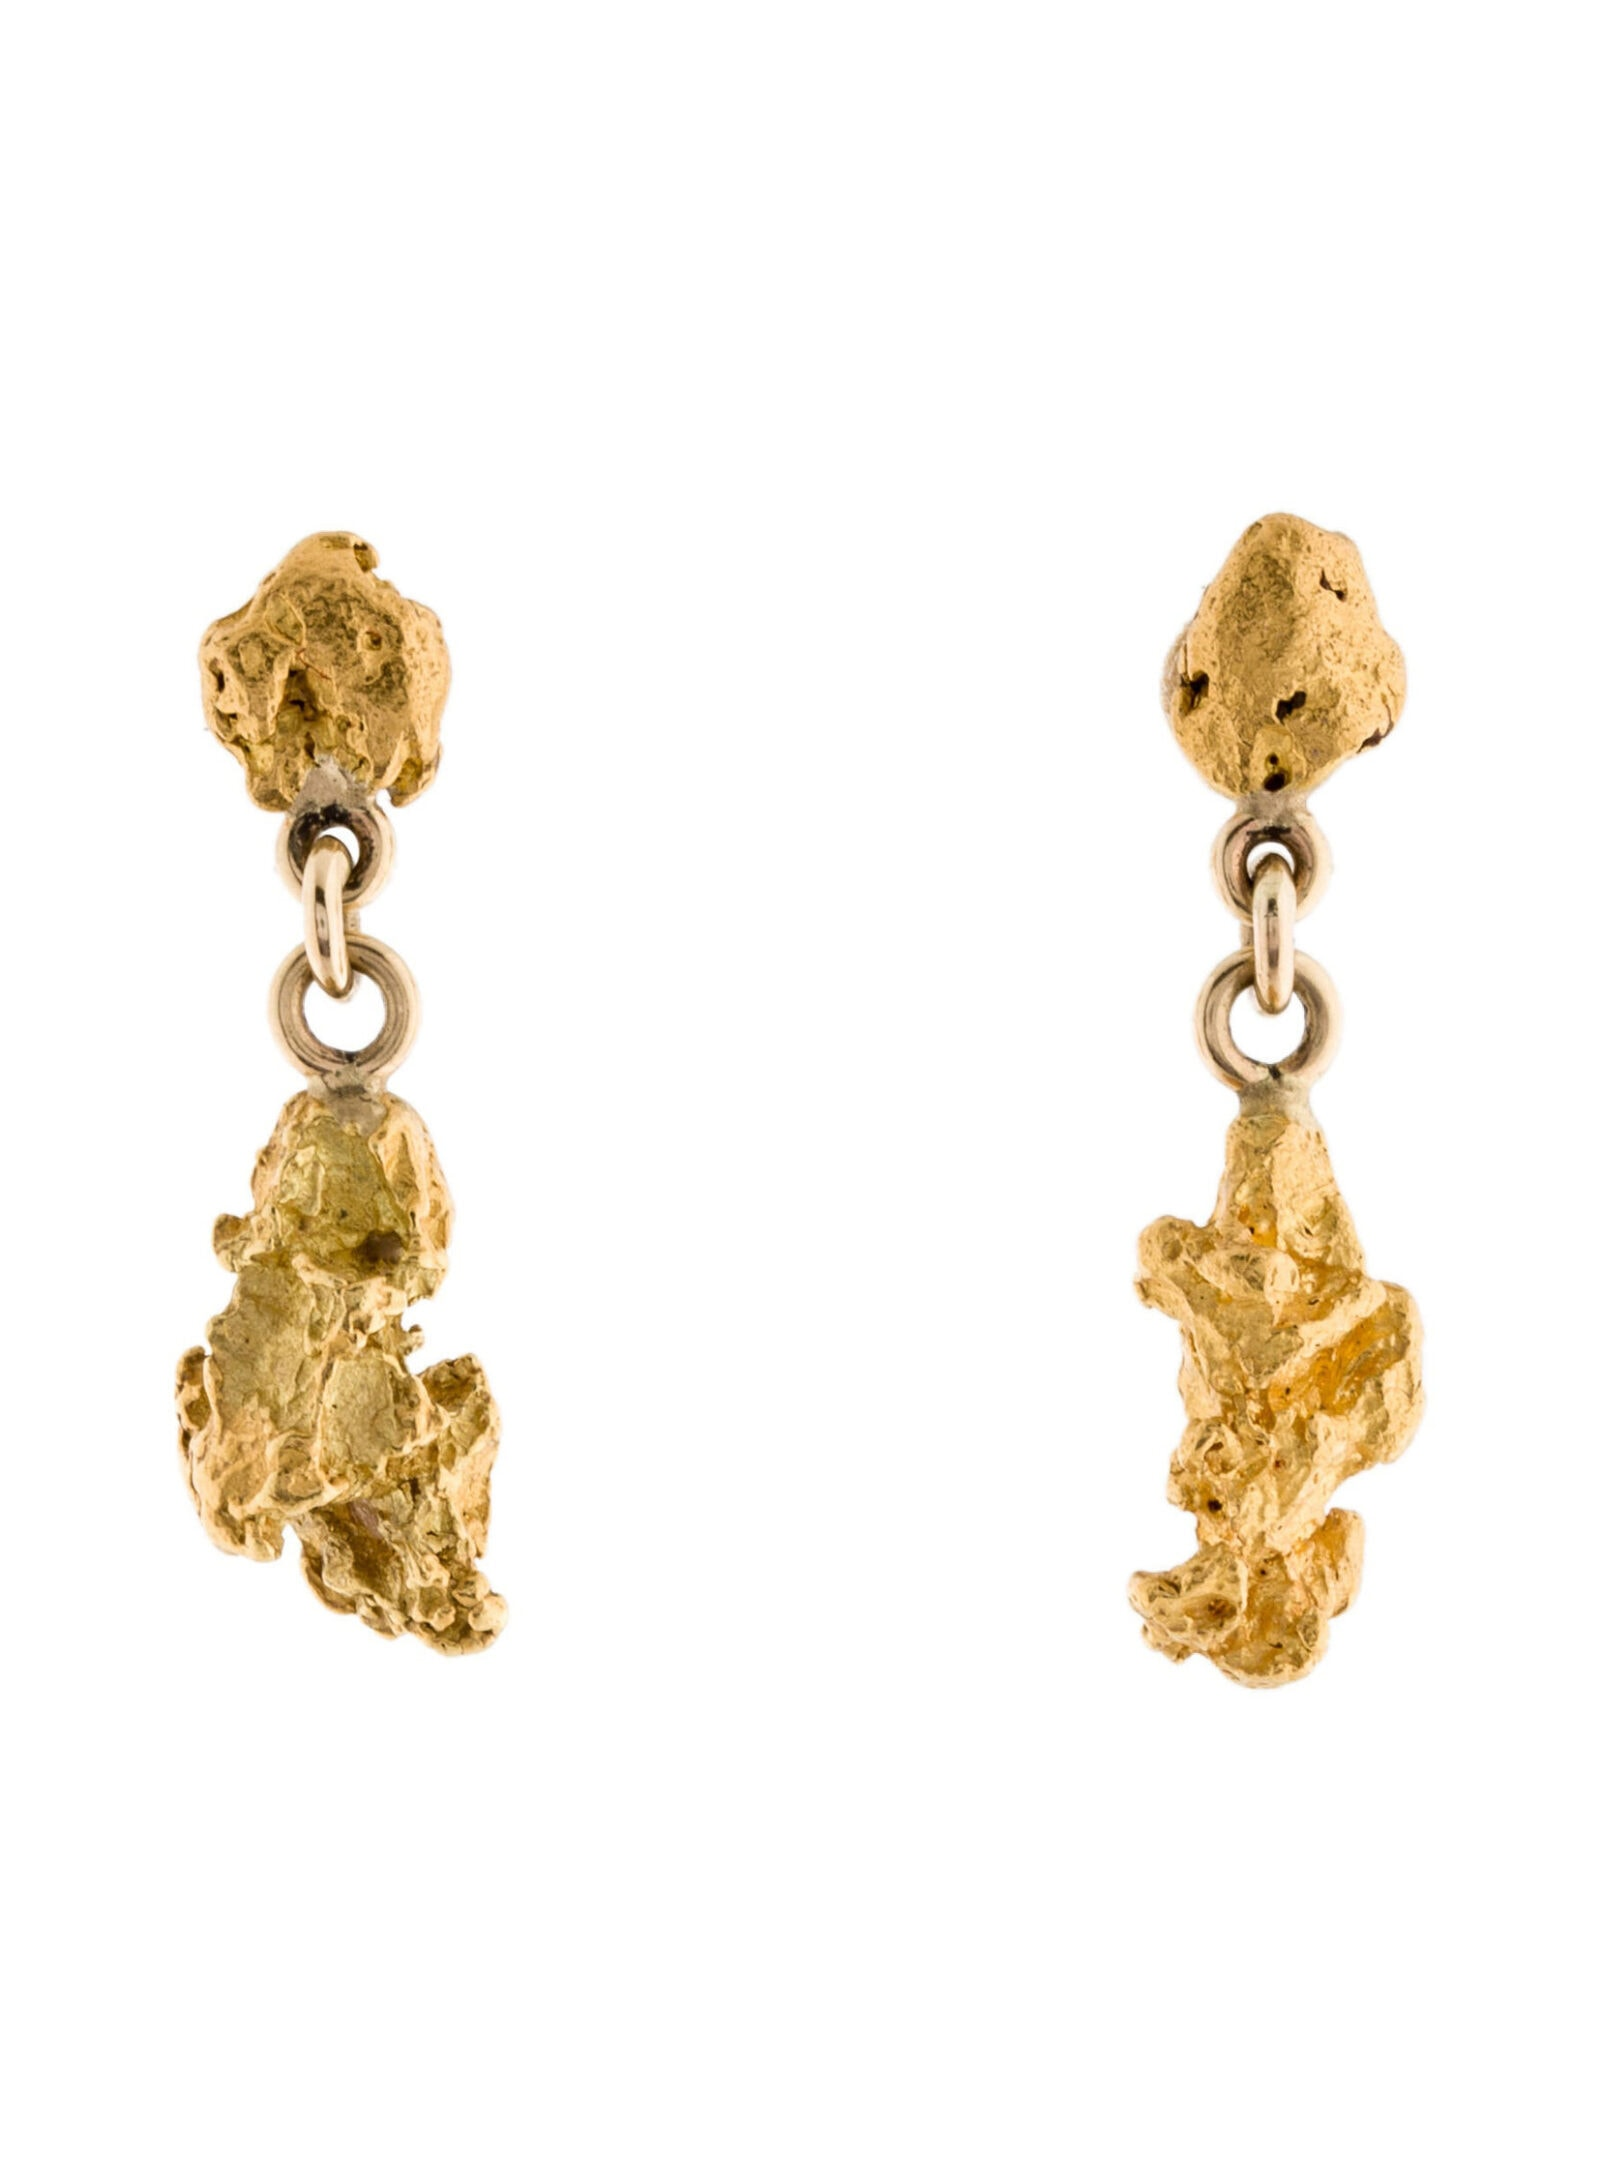 EARRINGS Gold Nugget Drop Earrings